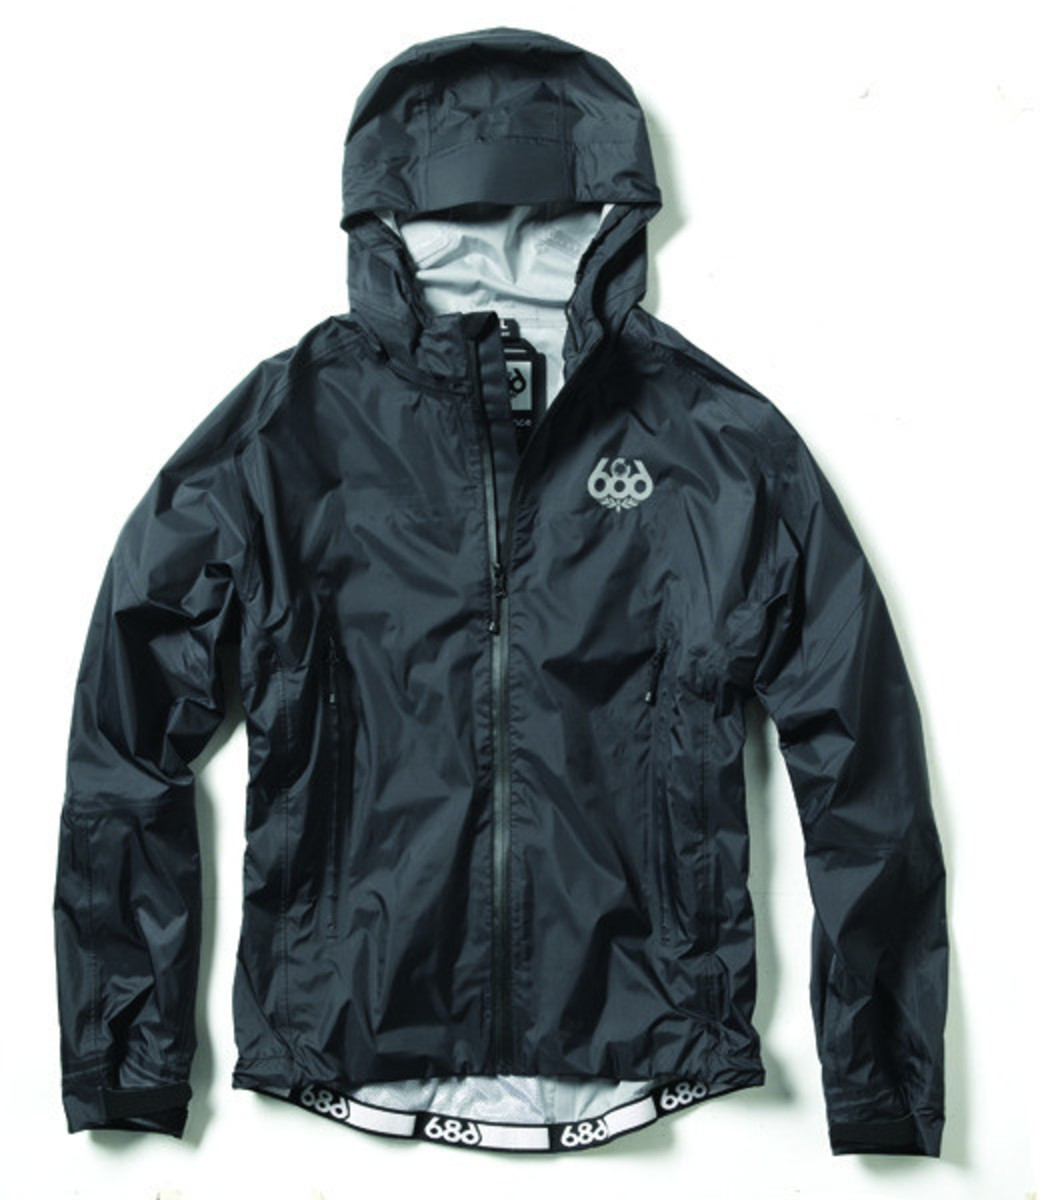 cadence-686-barrier-rain-jacket-01